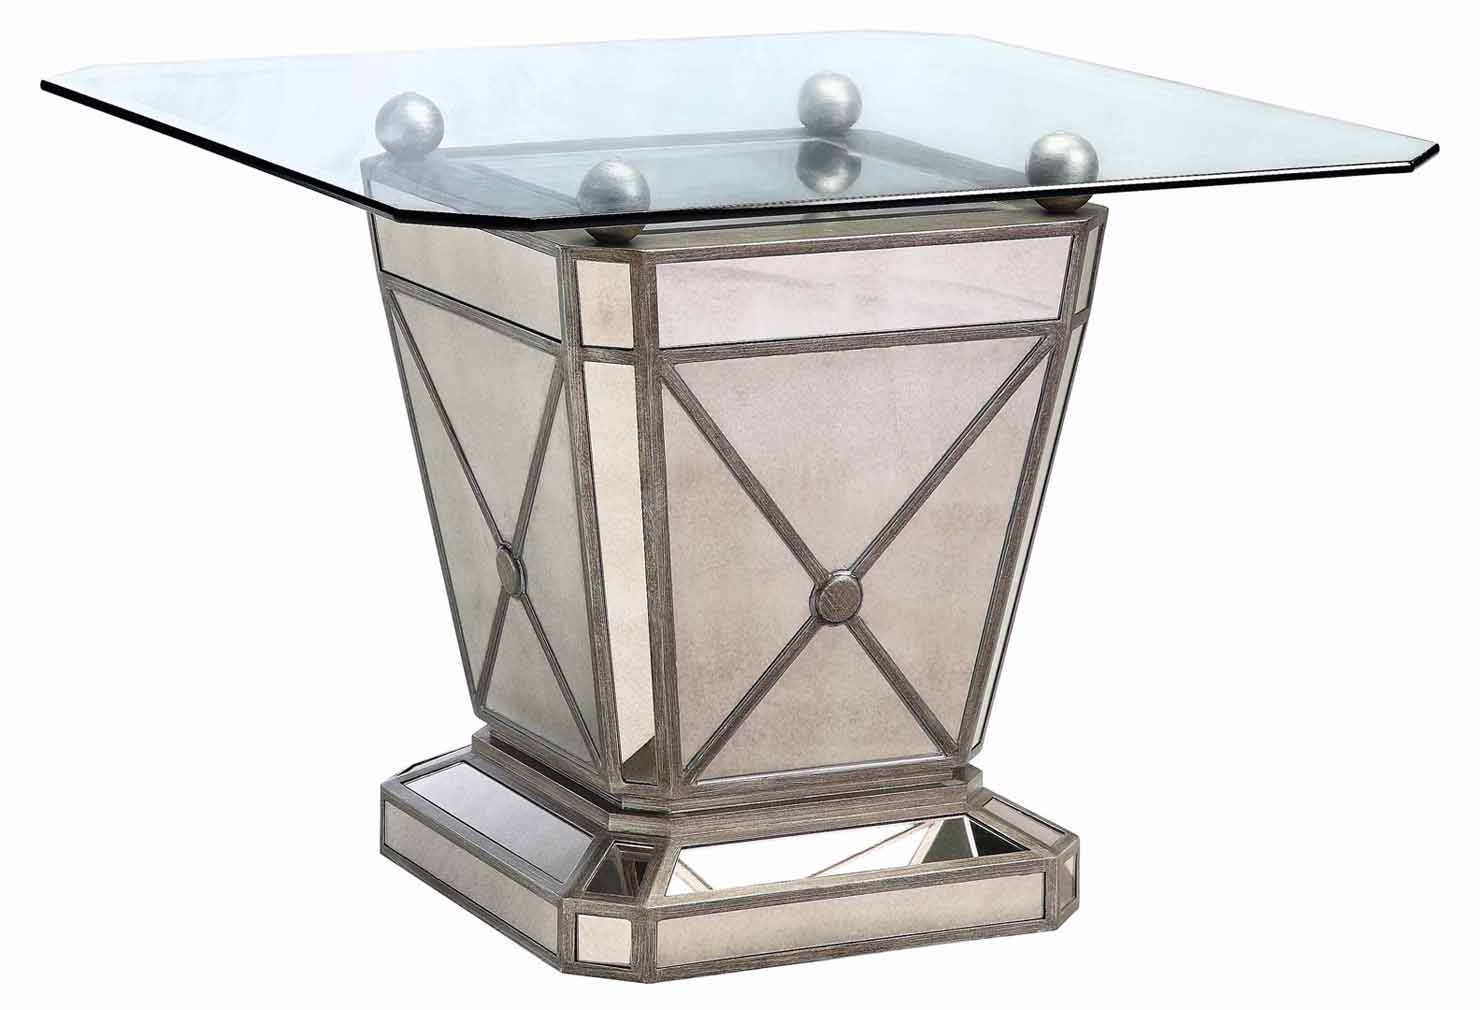 Image of: Mirrored Dining Room Table Design